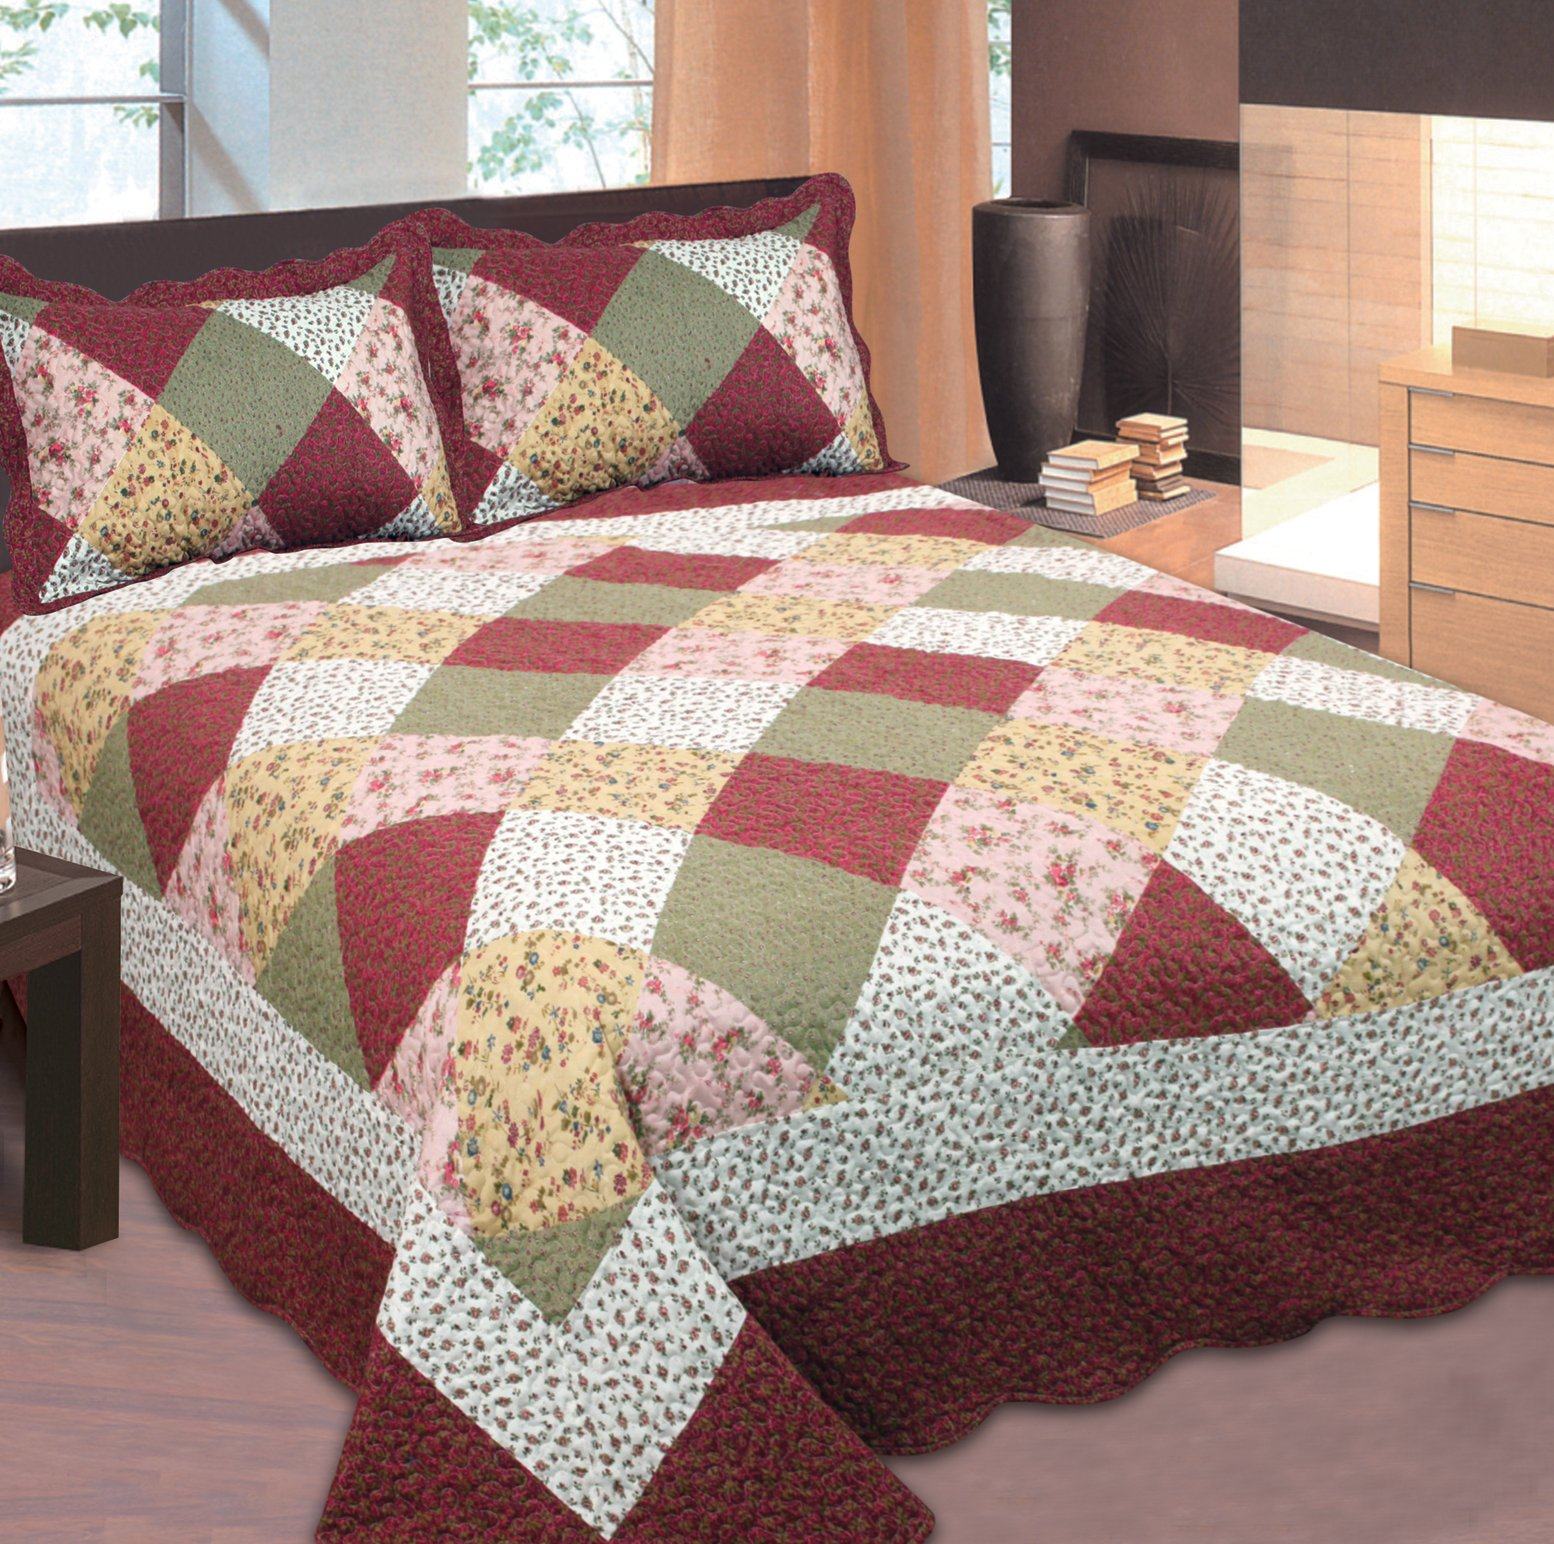 Mk Collection California King 3pc Bedspread Floral Patchwork Off White Burgundy Pink Beige Coverlet Set New 0015001